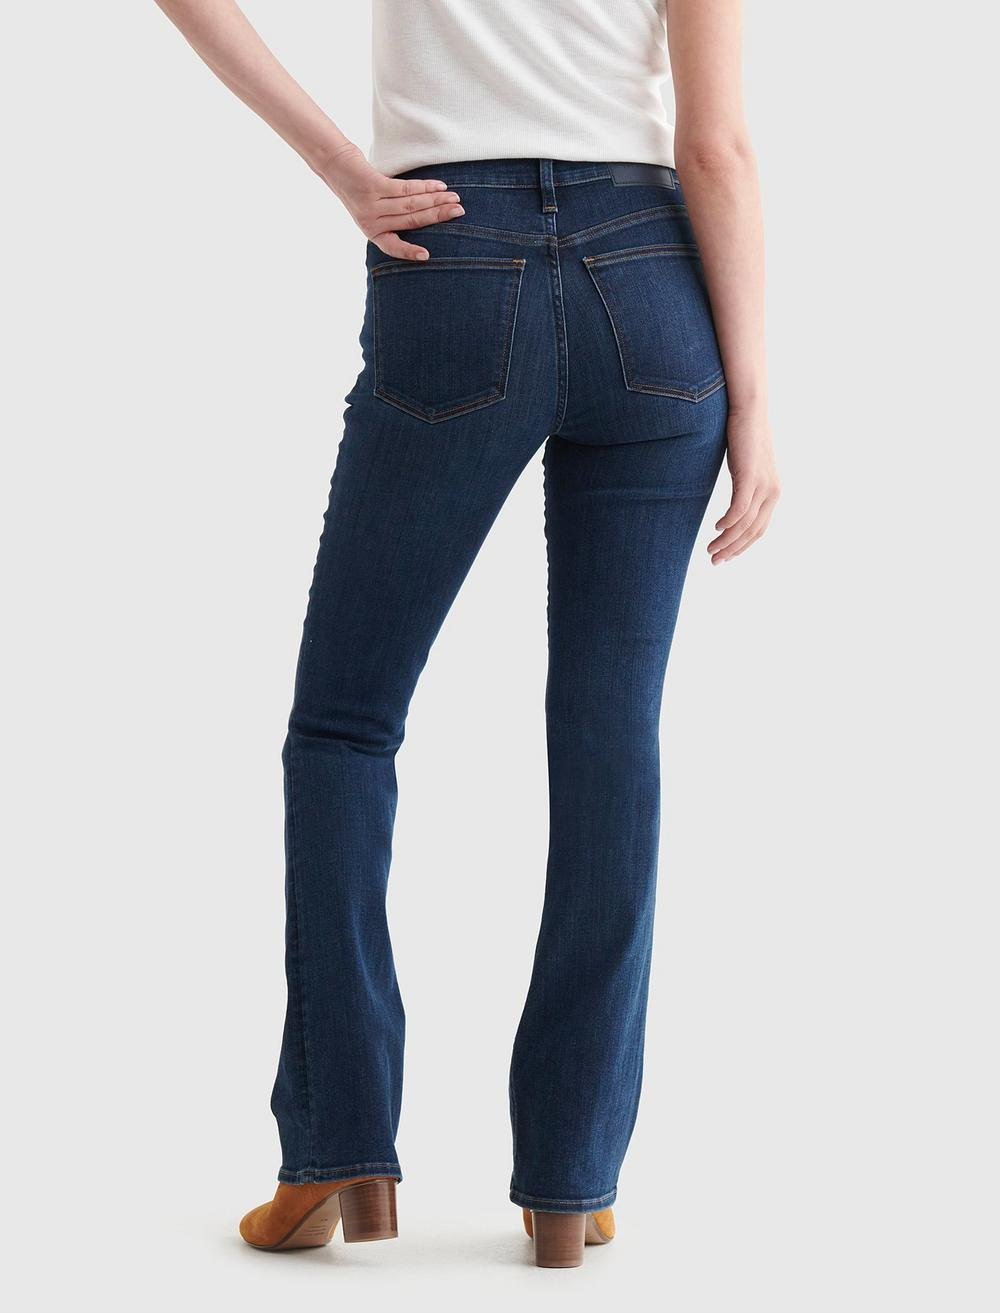 HIGH RISE BIANCA BOOT JEAN, image 5